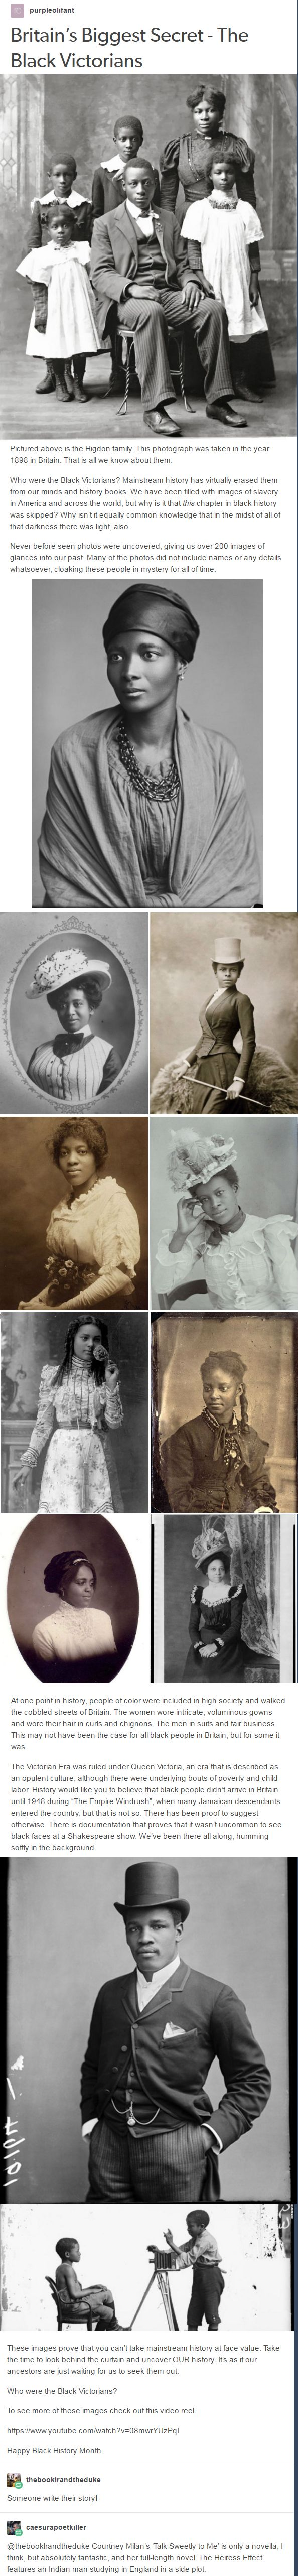 Britain's Biggest Secret - The Black Victorians. Who were the Black Victorians? Never before seen photos were uncovered, giving us over 200 images of glances into our past. This is amazing